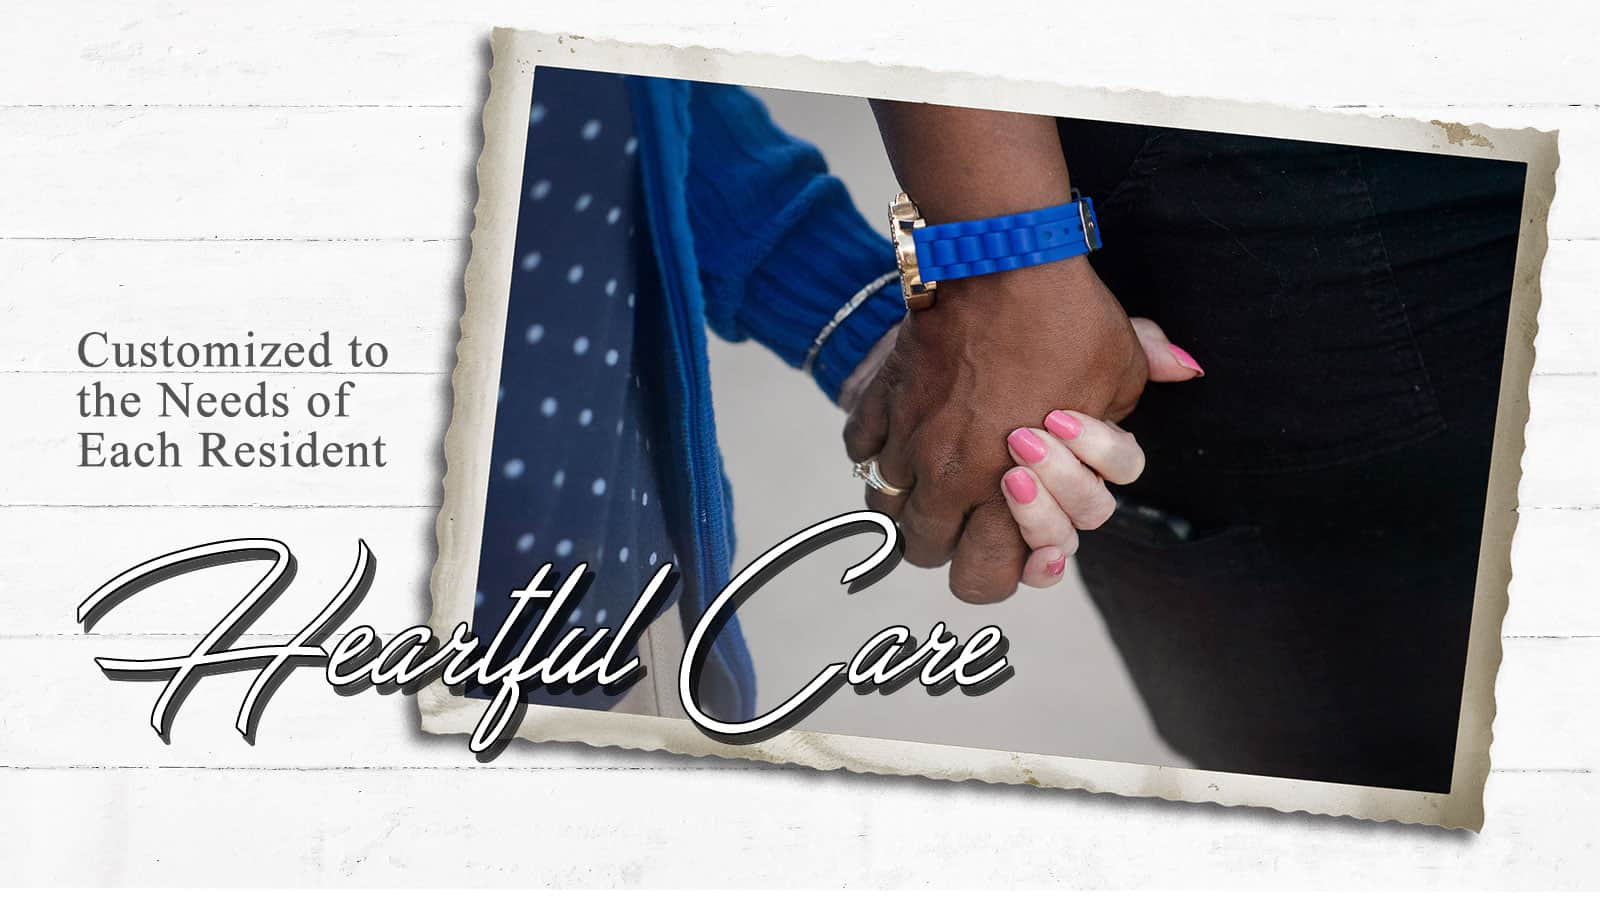 Heartful Care: Customized to the Needs of Each Resident